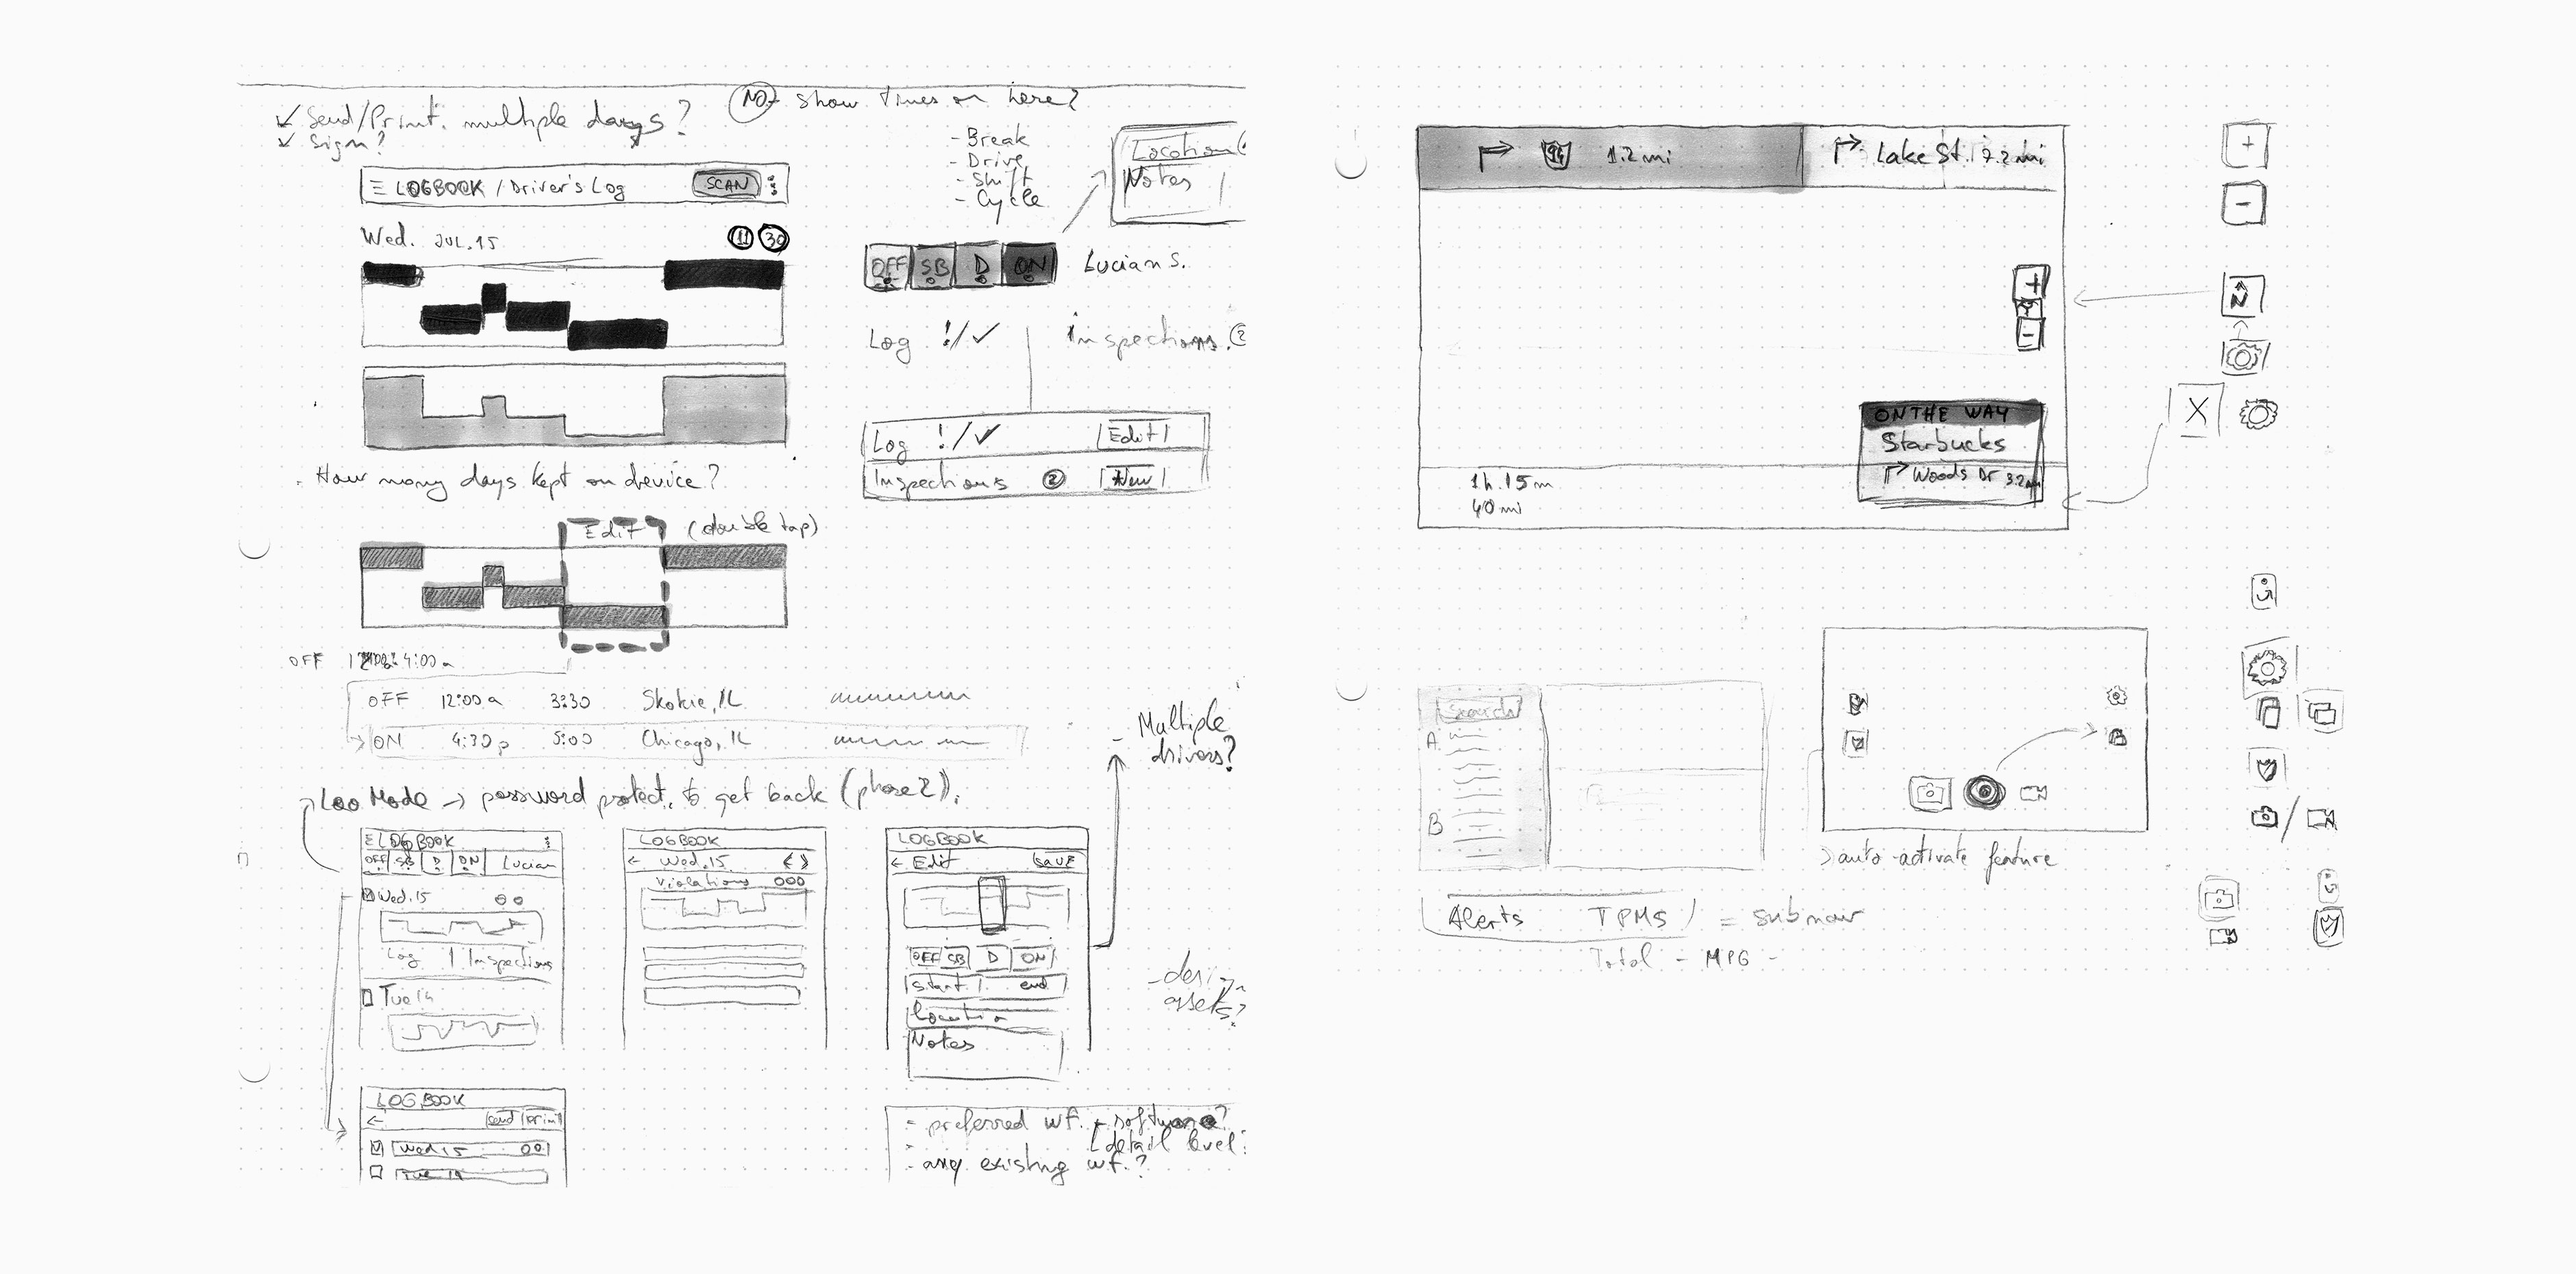 Wireframes sketches